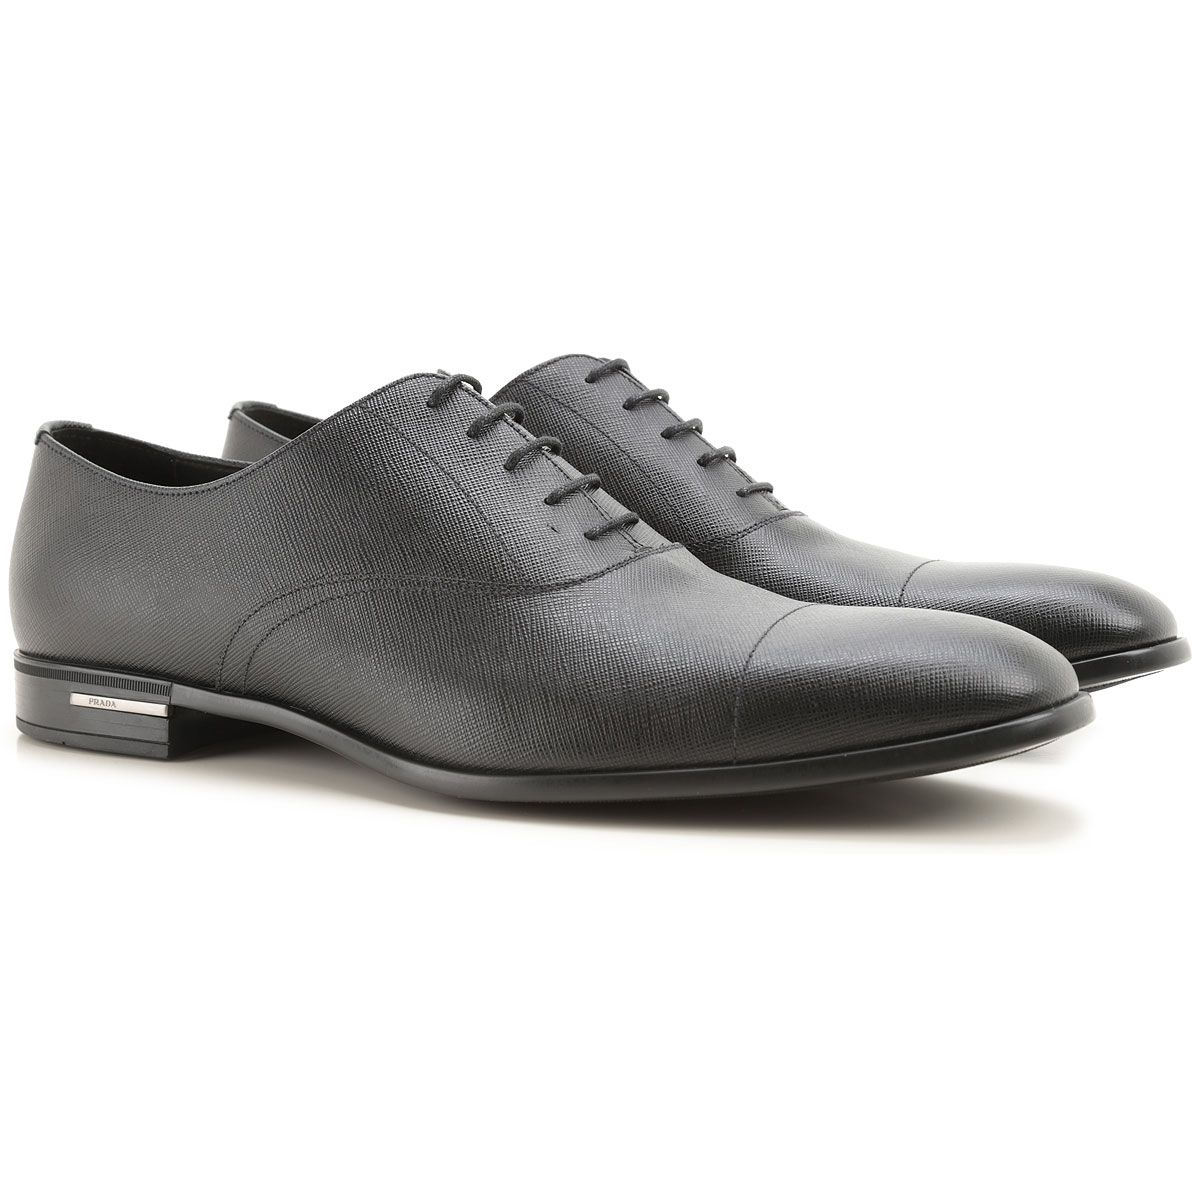 8998f39cf17 Chaussures Prada pour homme